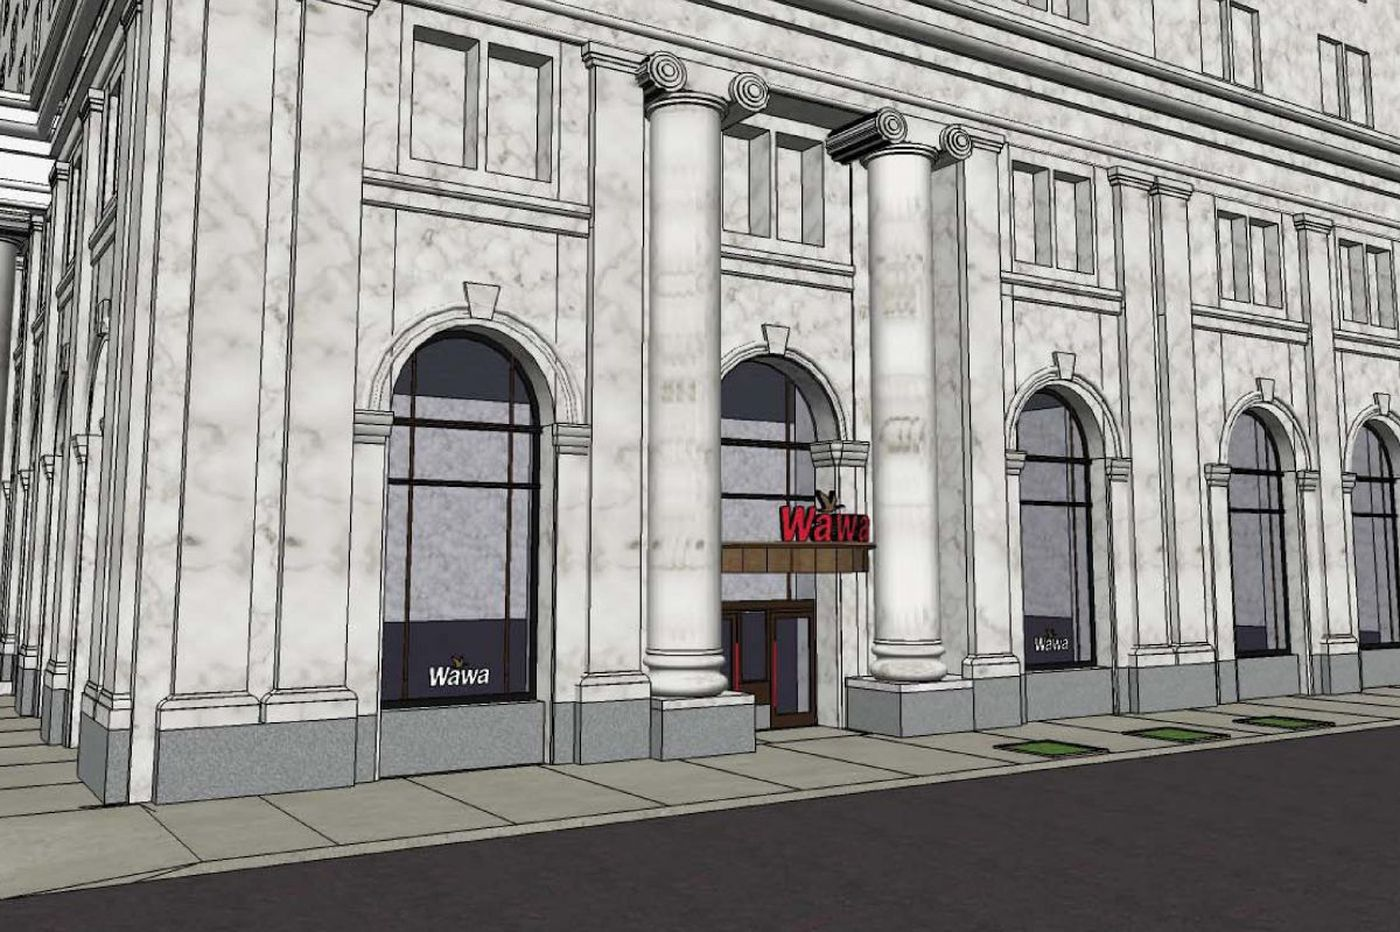 Wawa seeks permit for massive store near Independence Hall